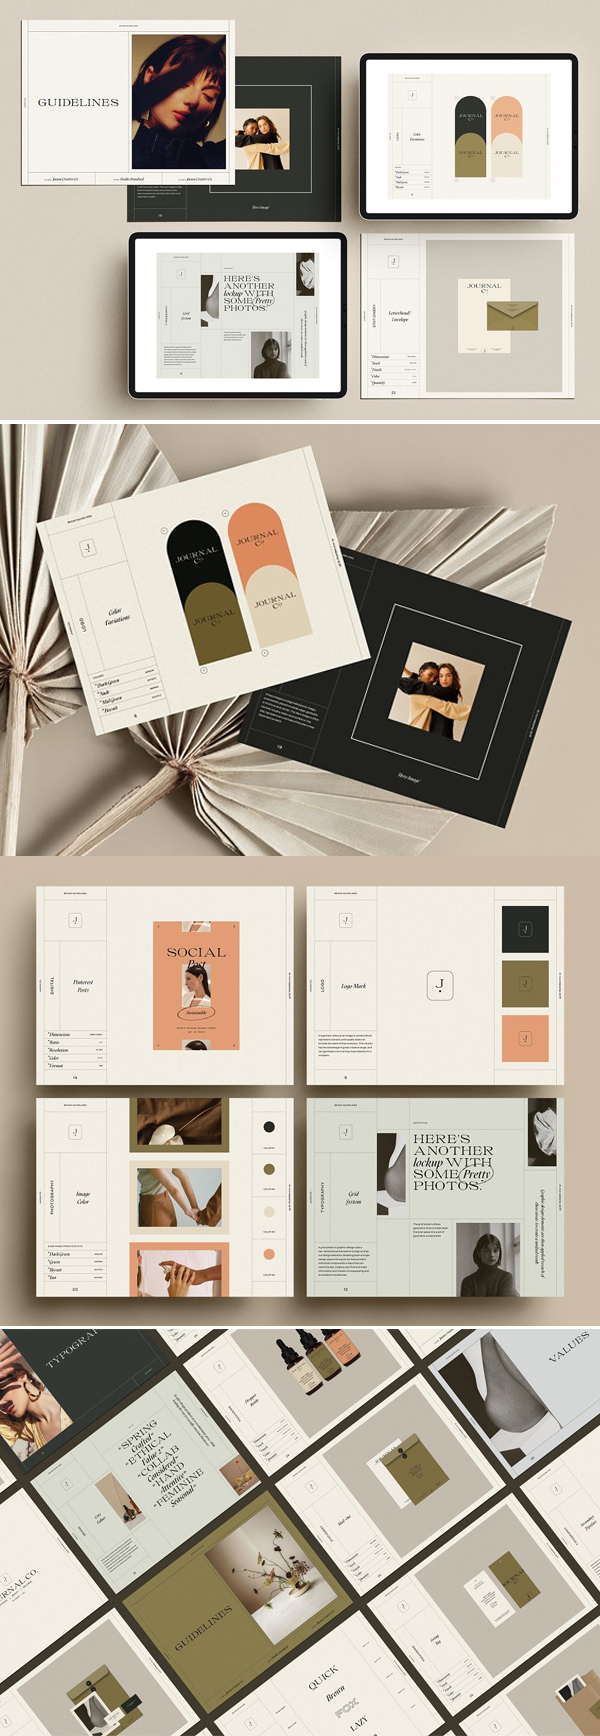 Awesome Brand Guidelines